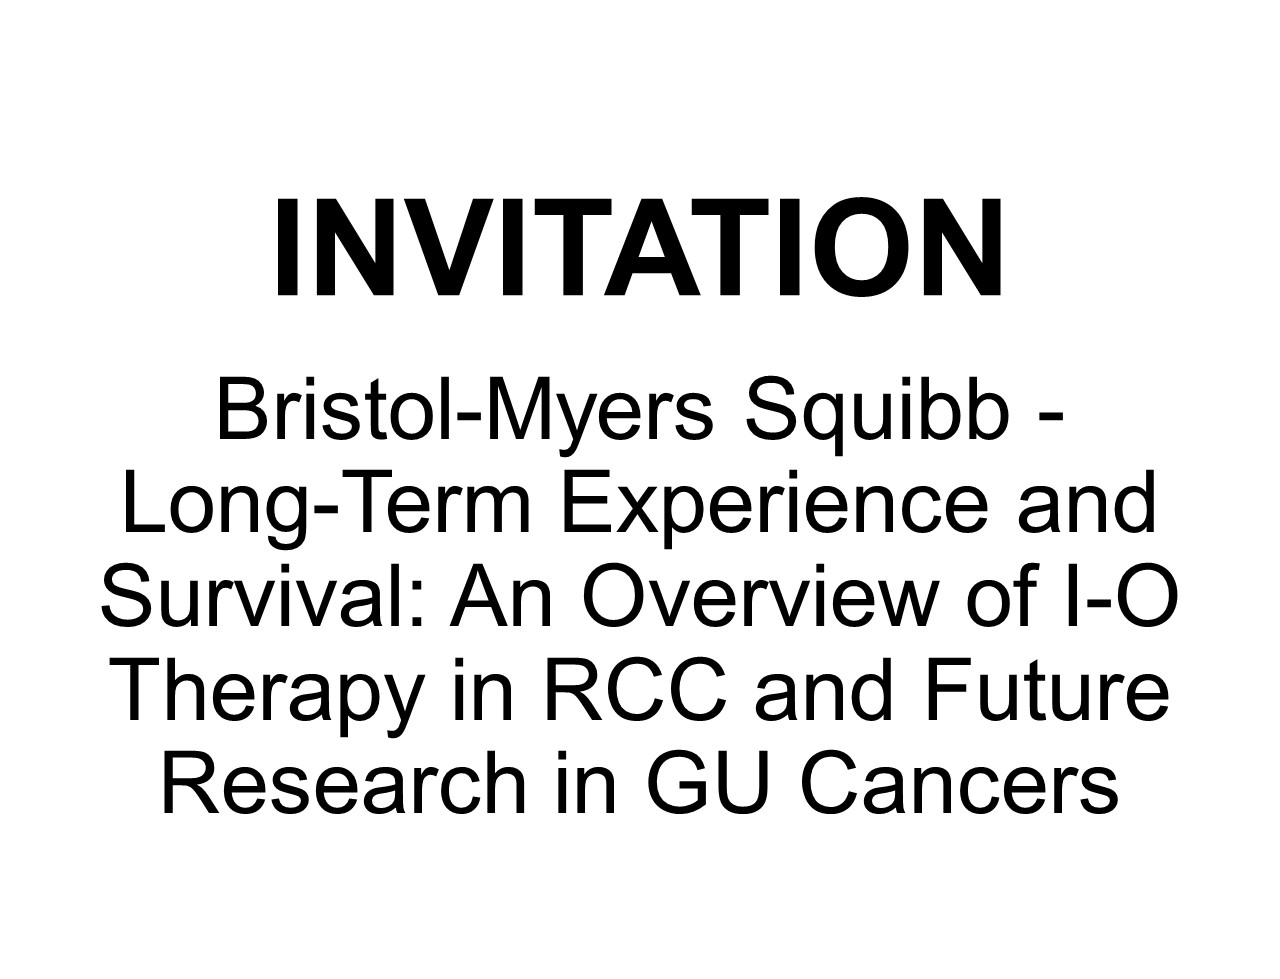 Bristol-Myers Squibb: Long-Term Experience